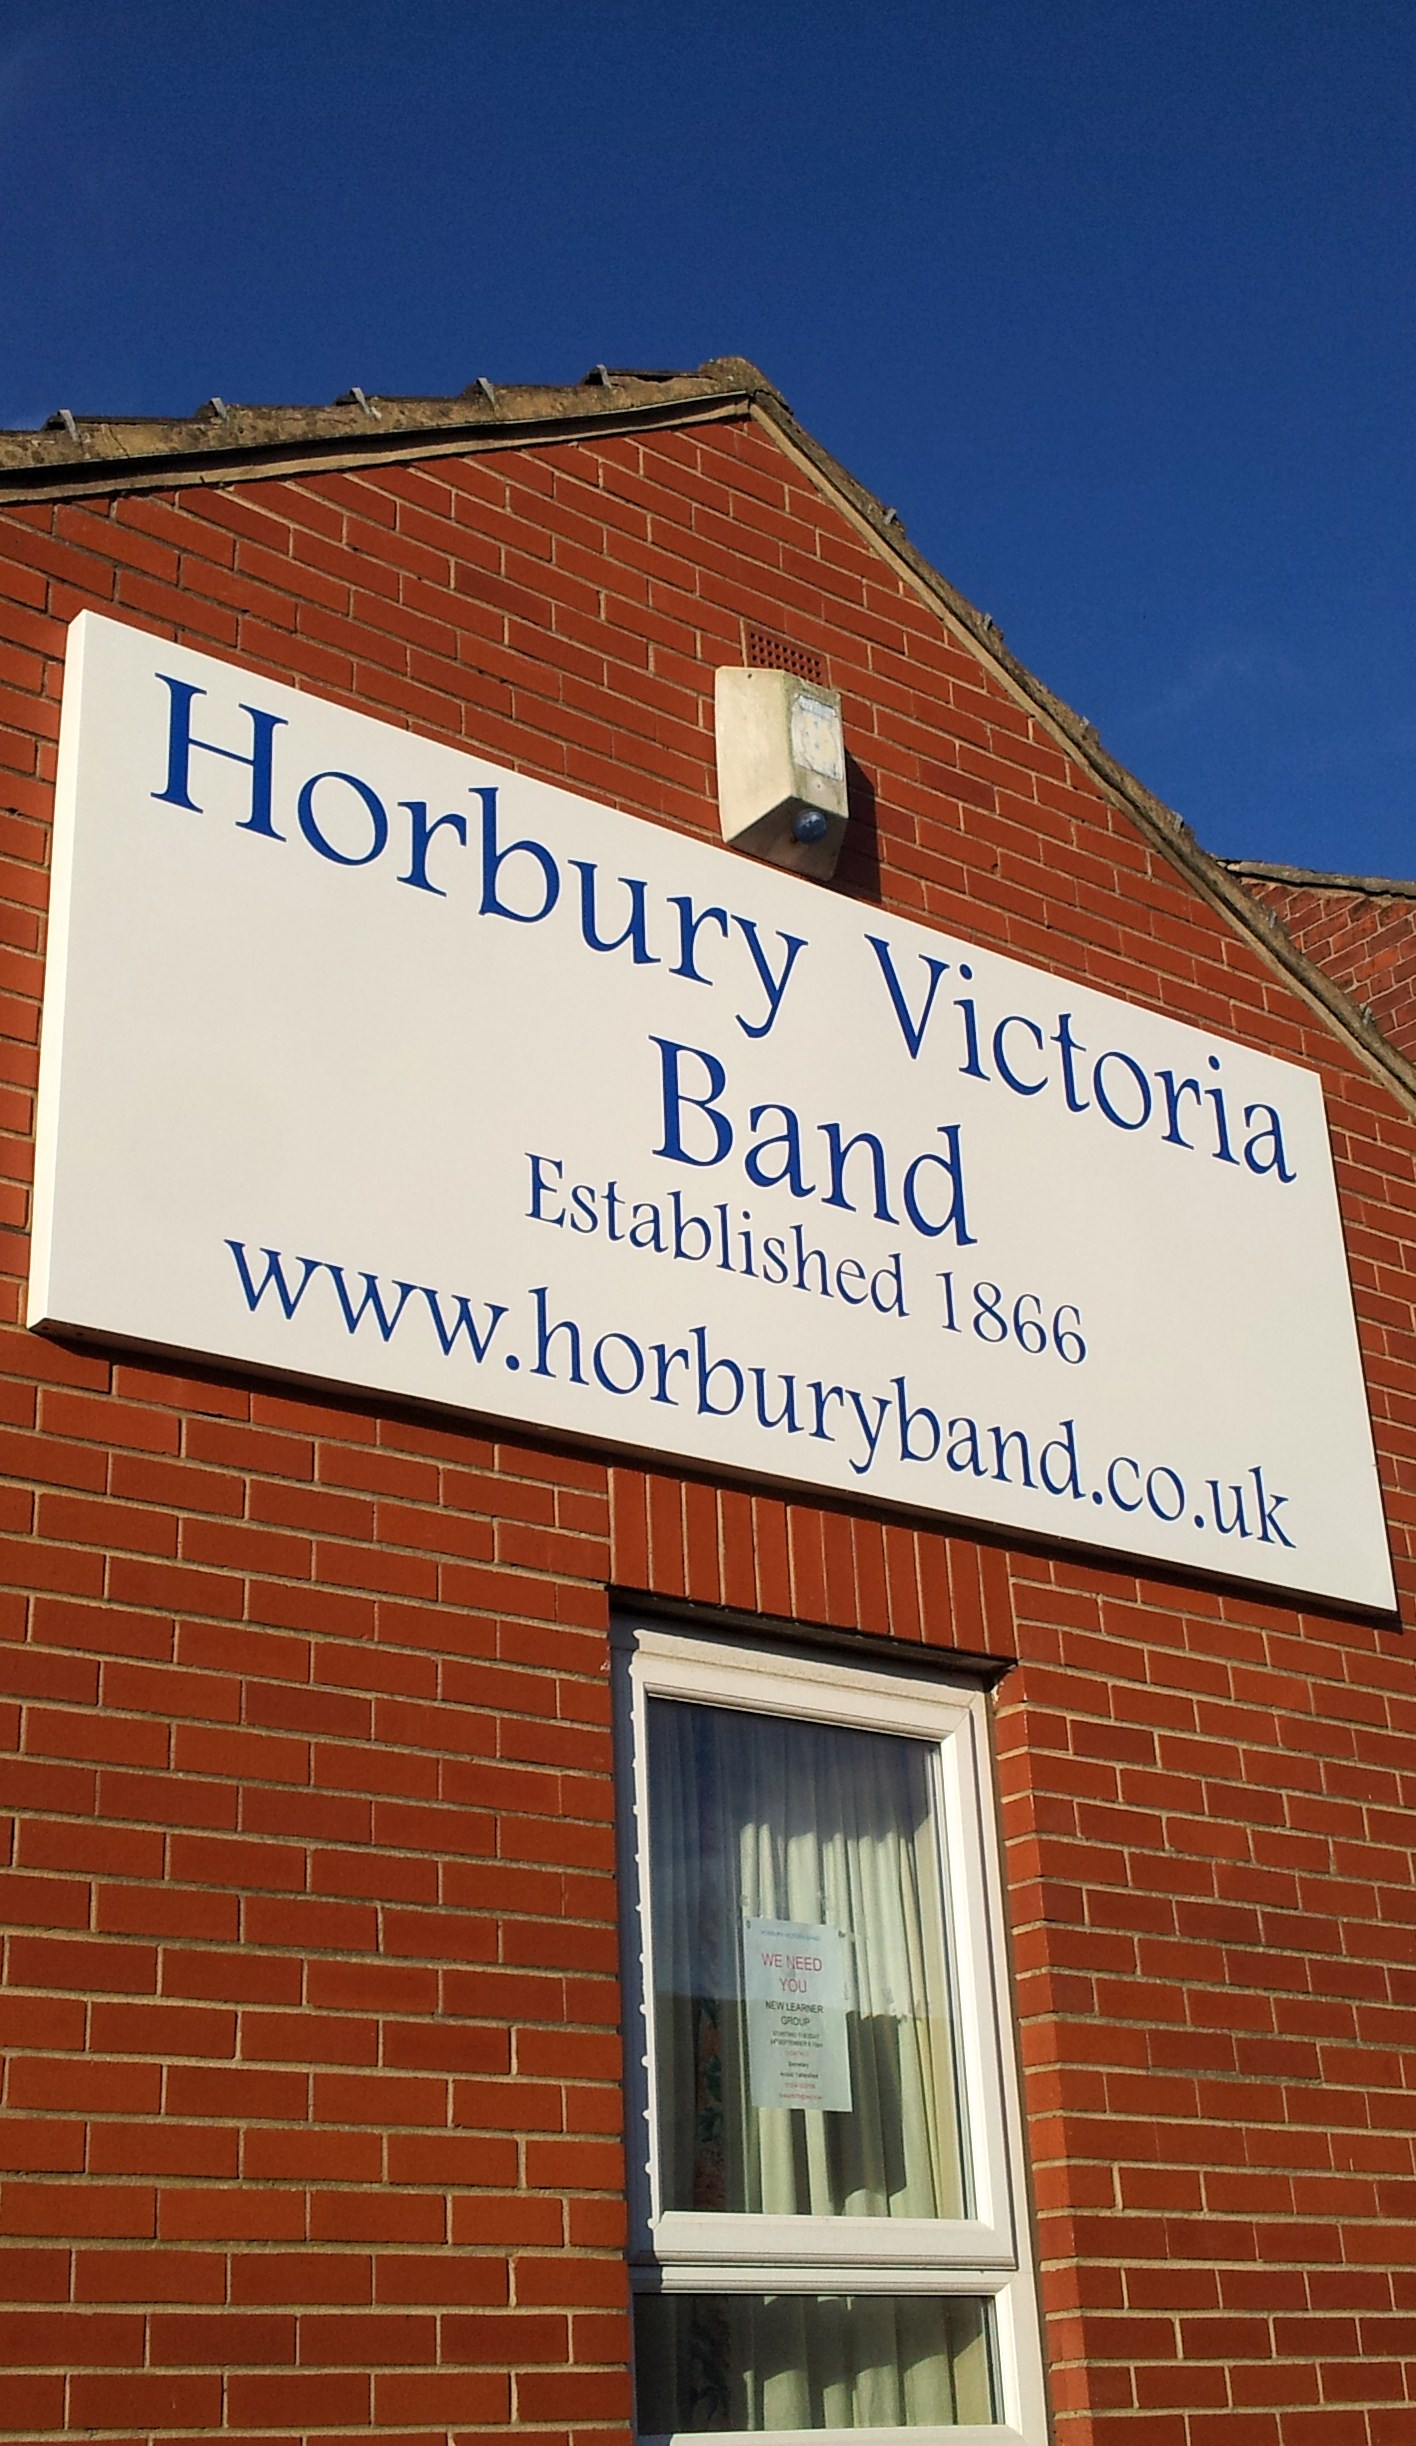 Horbury Band - Band Room